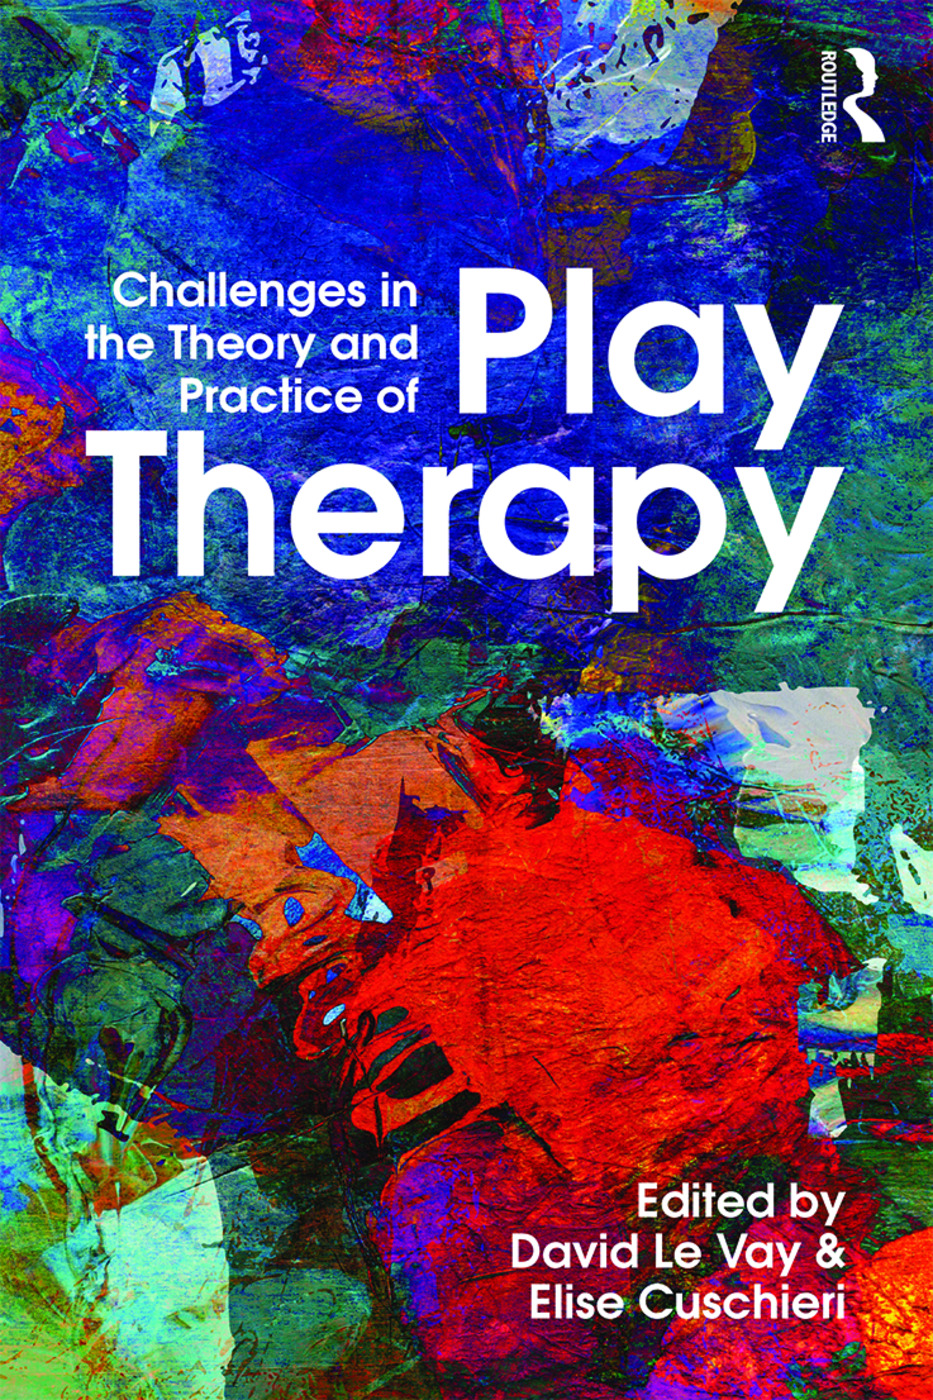 Challenges in the Theory and Practice of Play Therapy